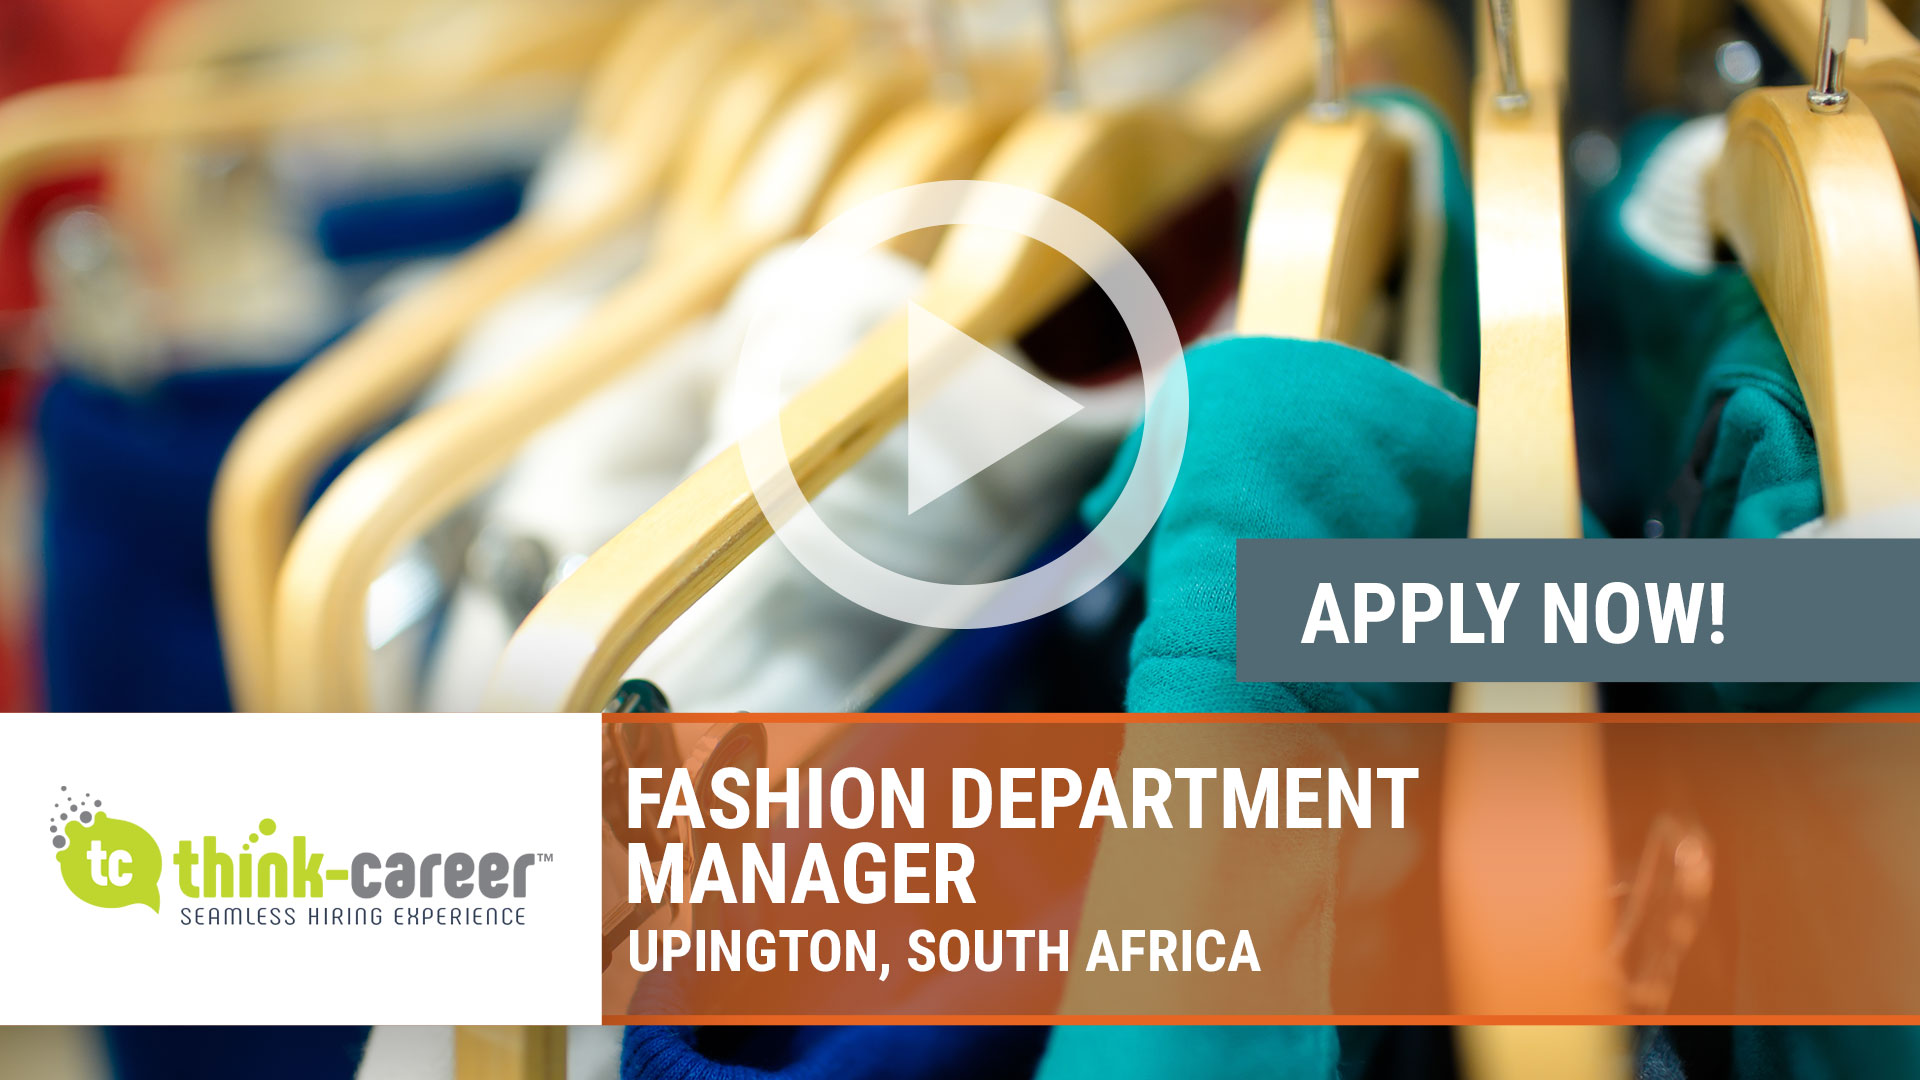 Watch our careers video for available job opening Fashion Department Manager in Upington, South Africa